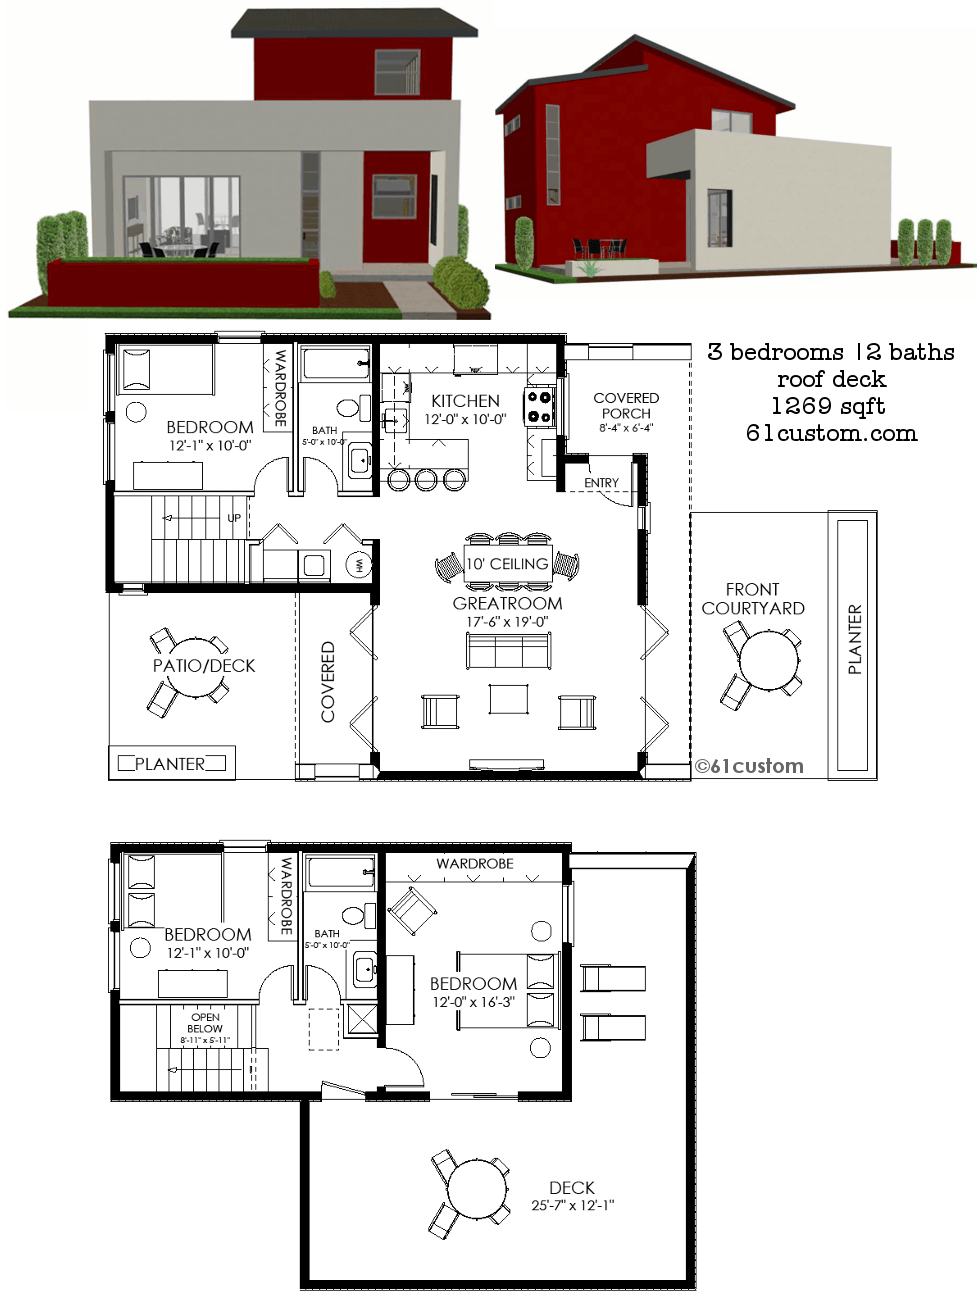 Contemporary small house plan 61custom contemporary modern house plans - Modern house designs ...